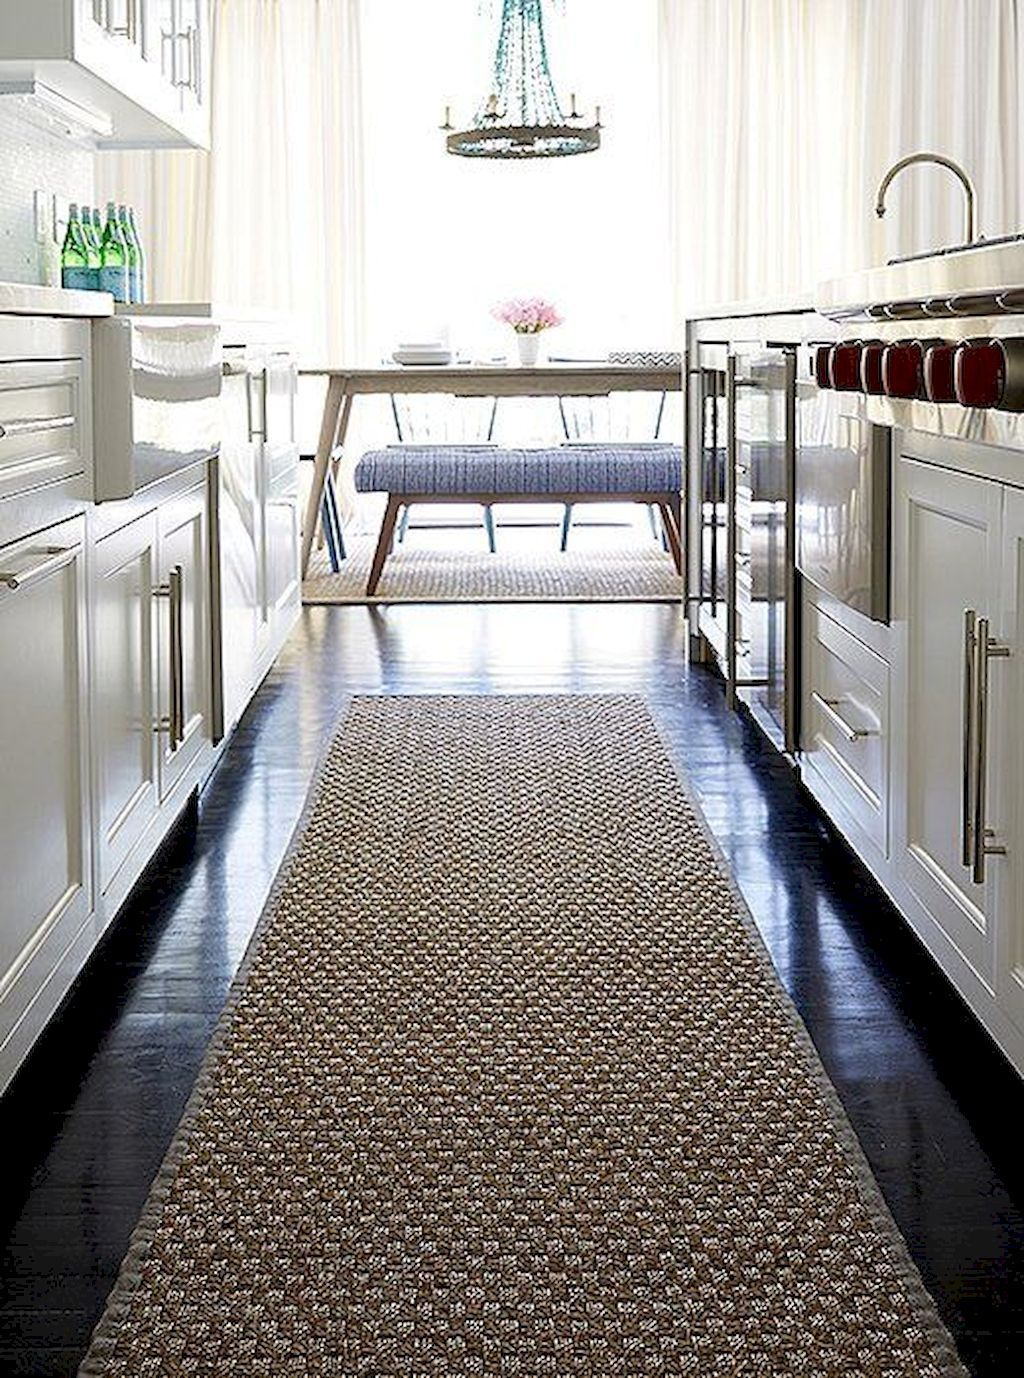 Kitchen Floor Mats (Comfort and Ergonomic Type of Mats) in 5